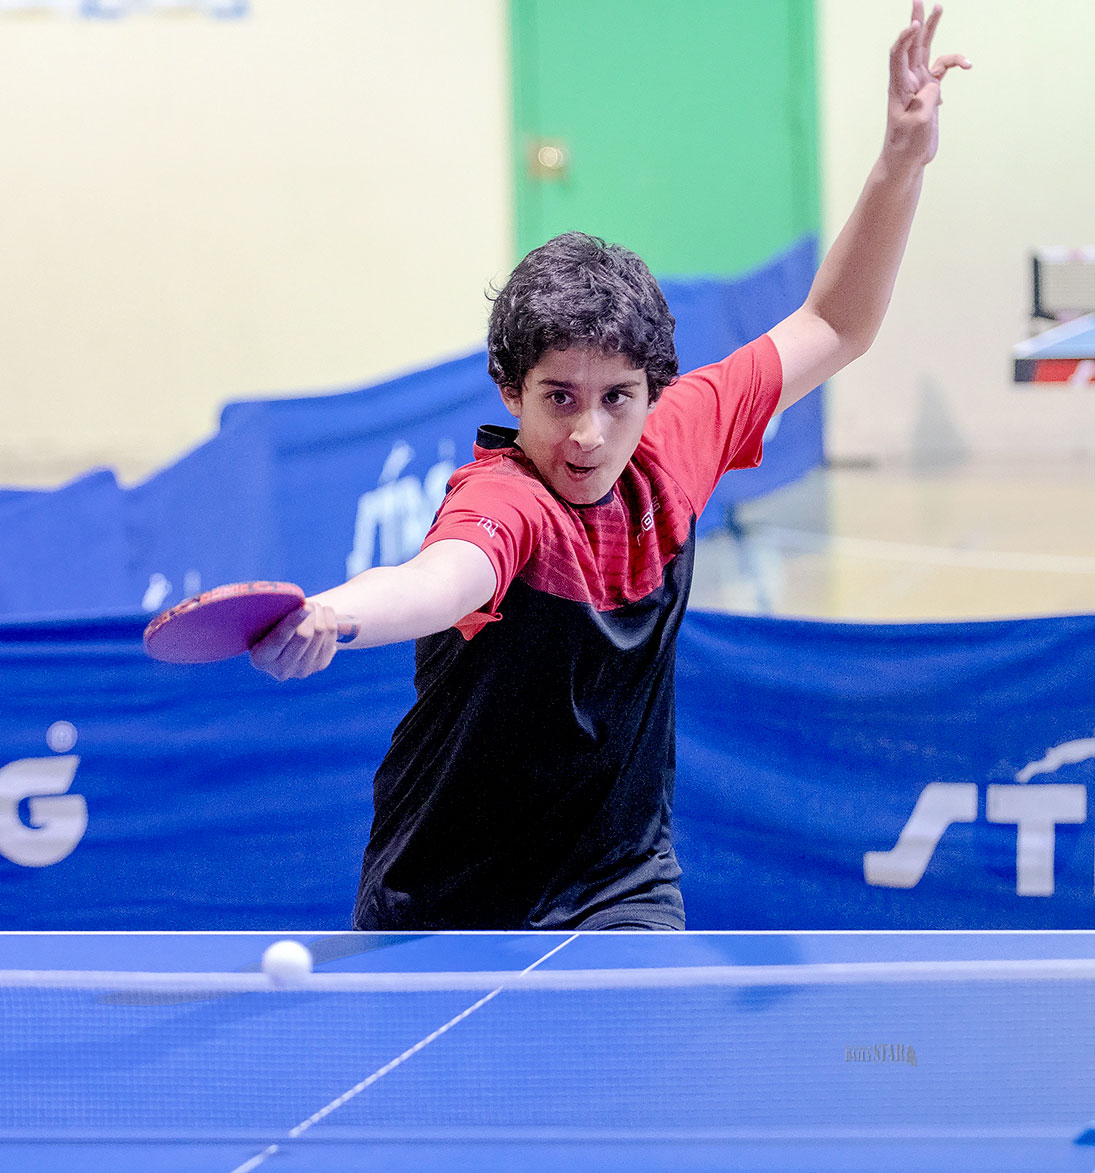 Whitehorse Daily Star: Bachli repeats as table tennis champ while Gaw unseats former champ